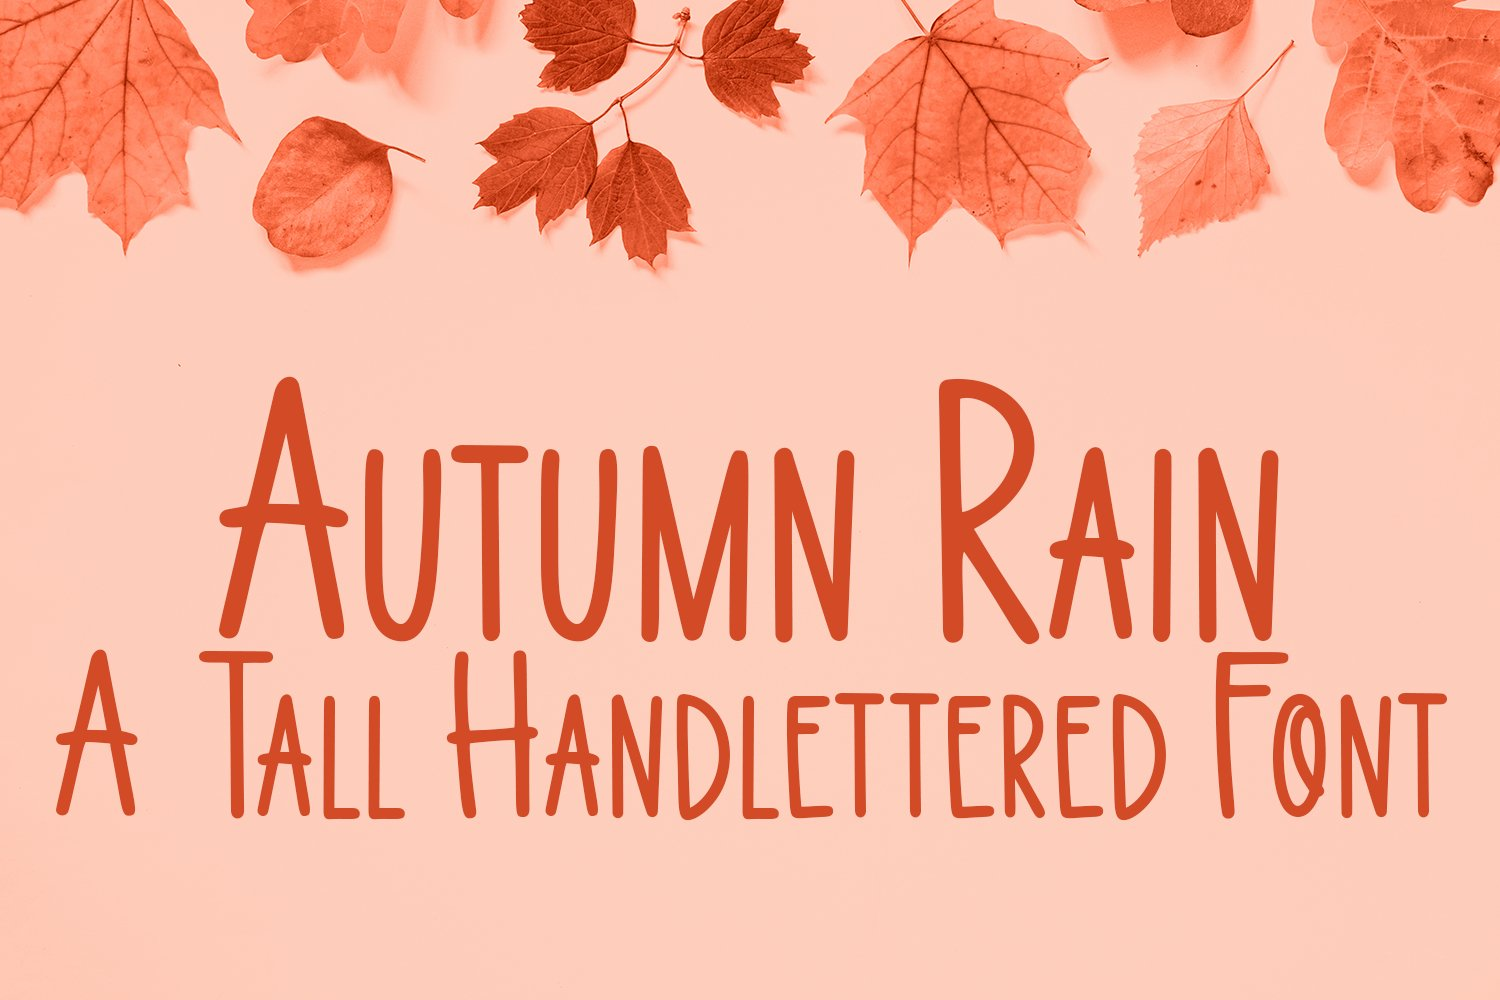 Autumn Rain - A Tall Hand-Lettered Font example image 1